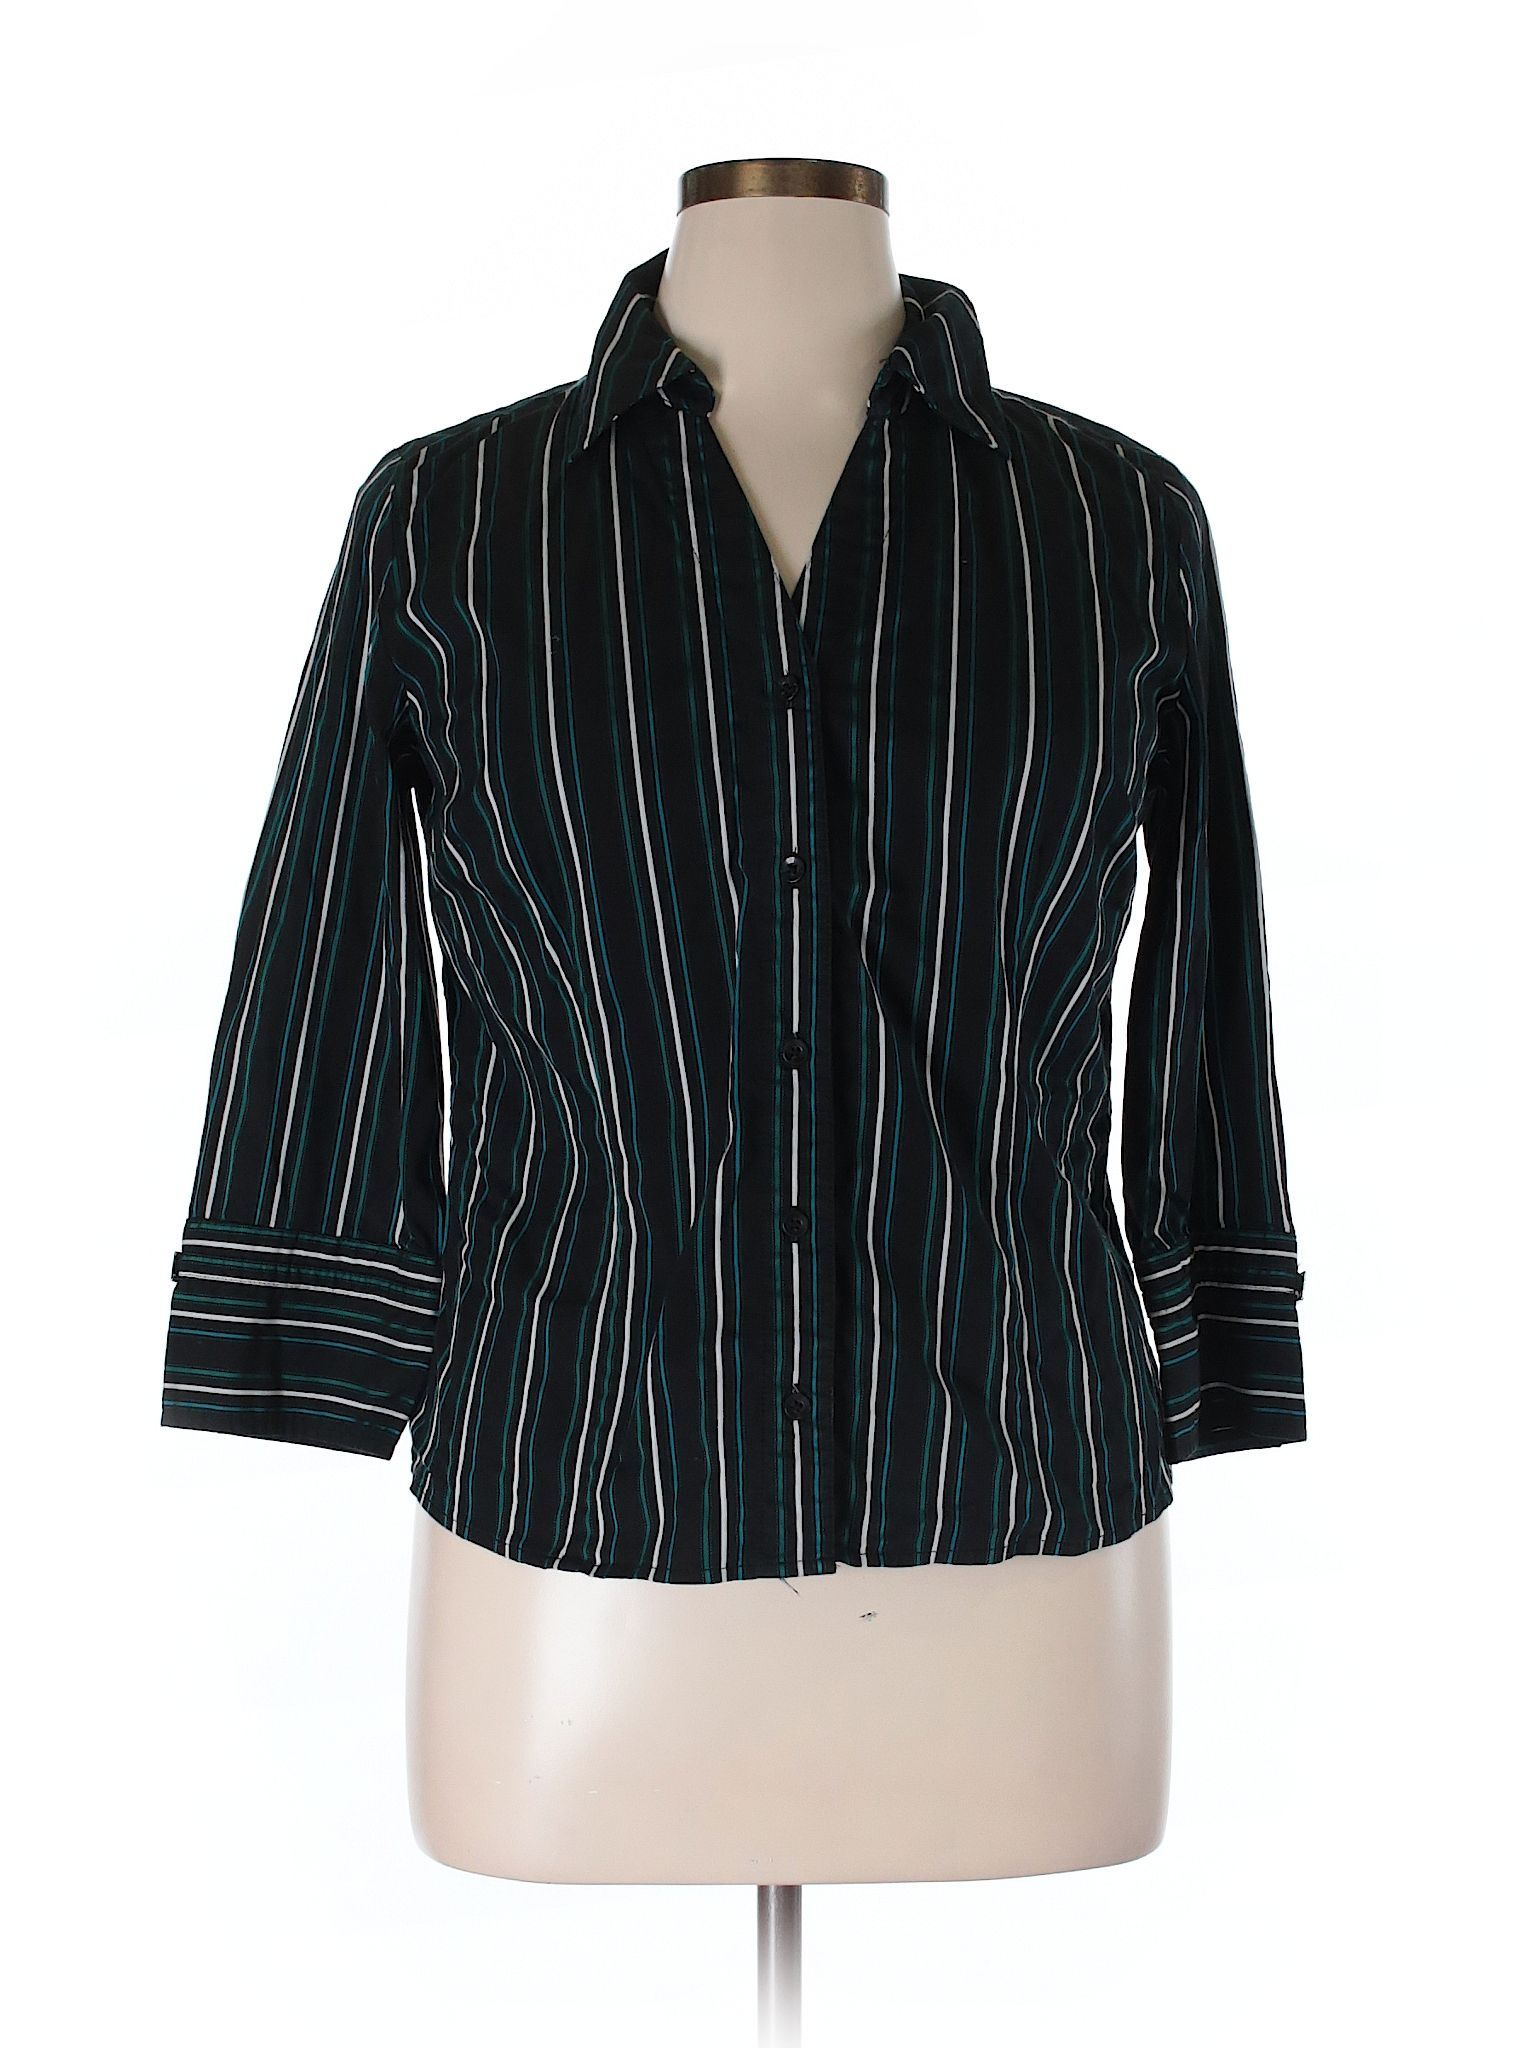 c8610a124 Alfani 3/4 Sleeve Button Down Shirt: Size 14 Black Women's Tops ...